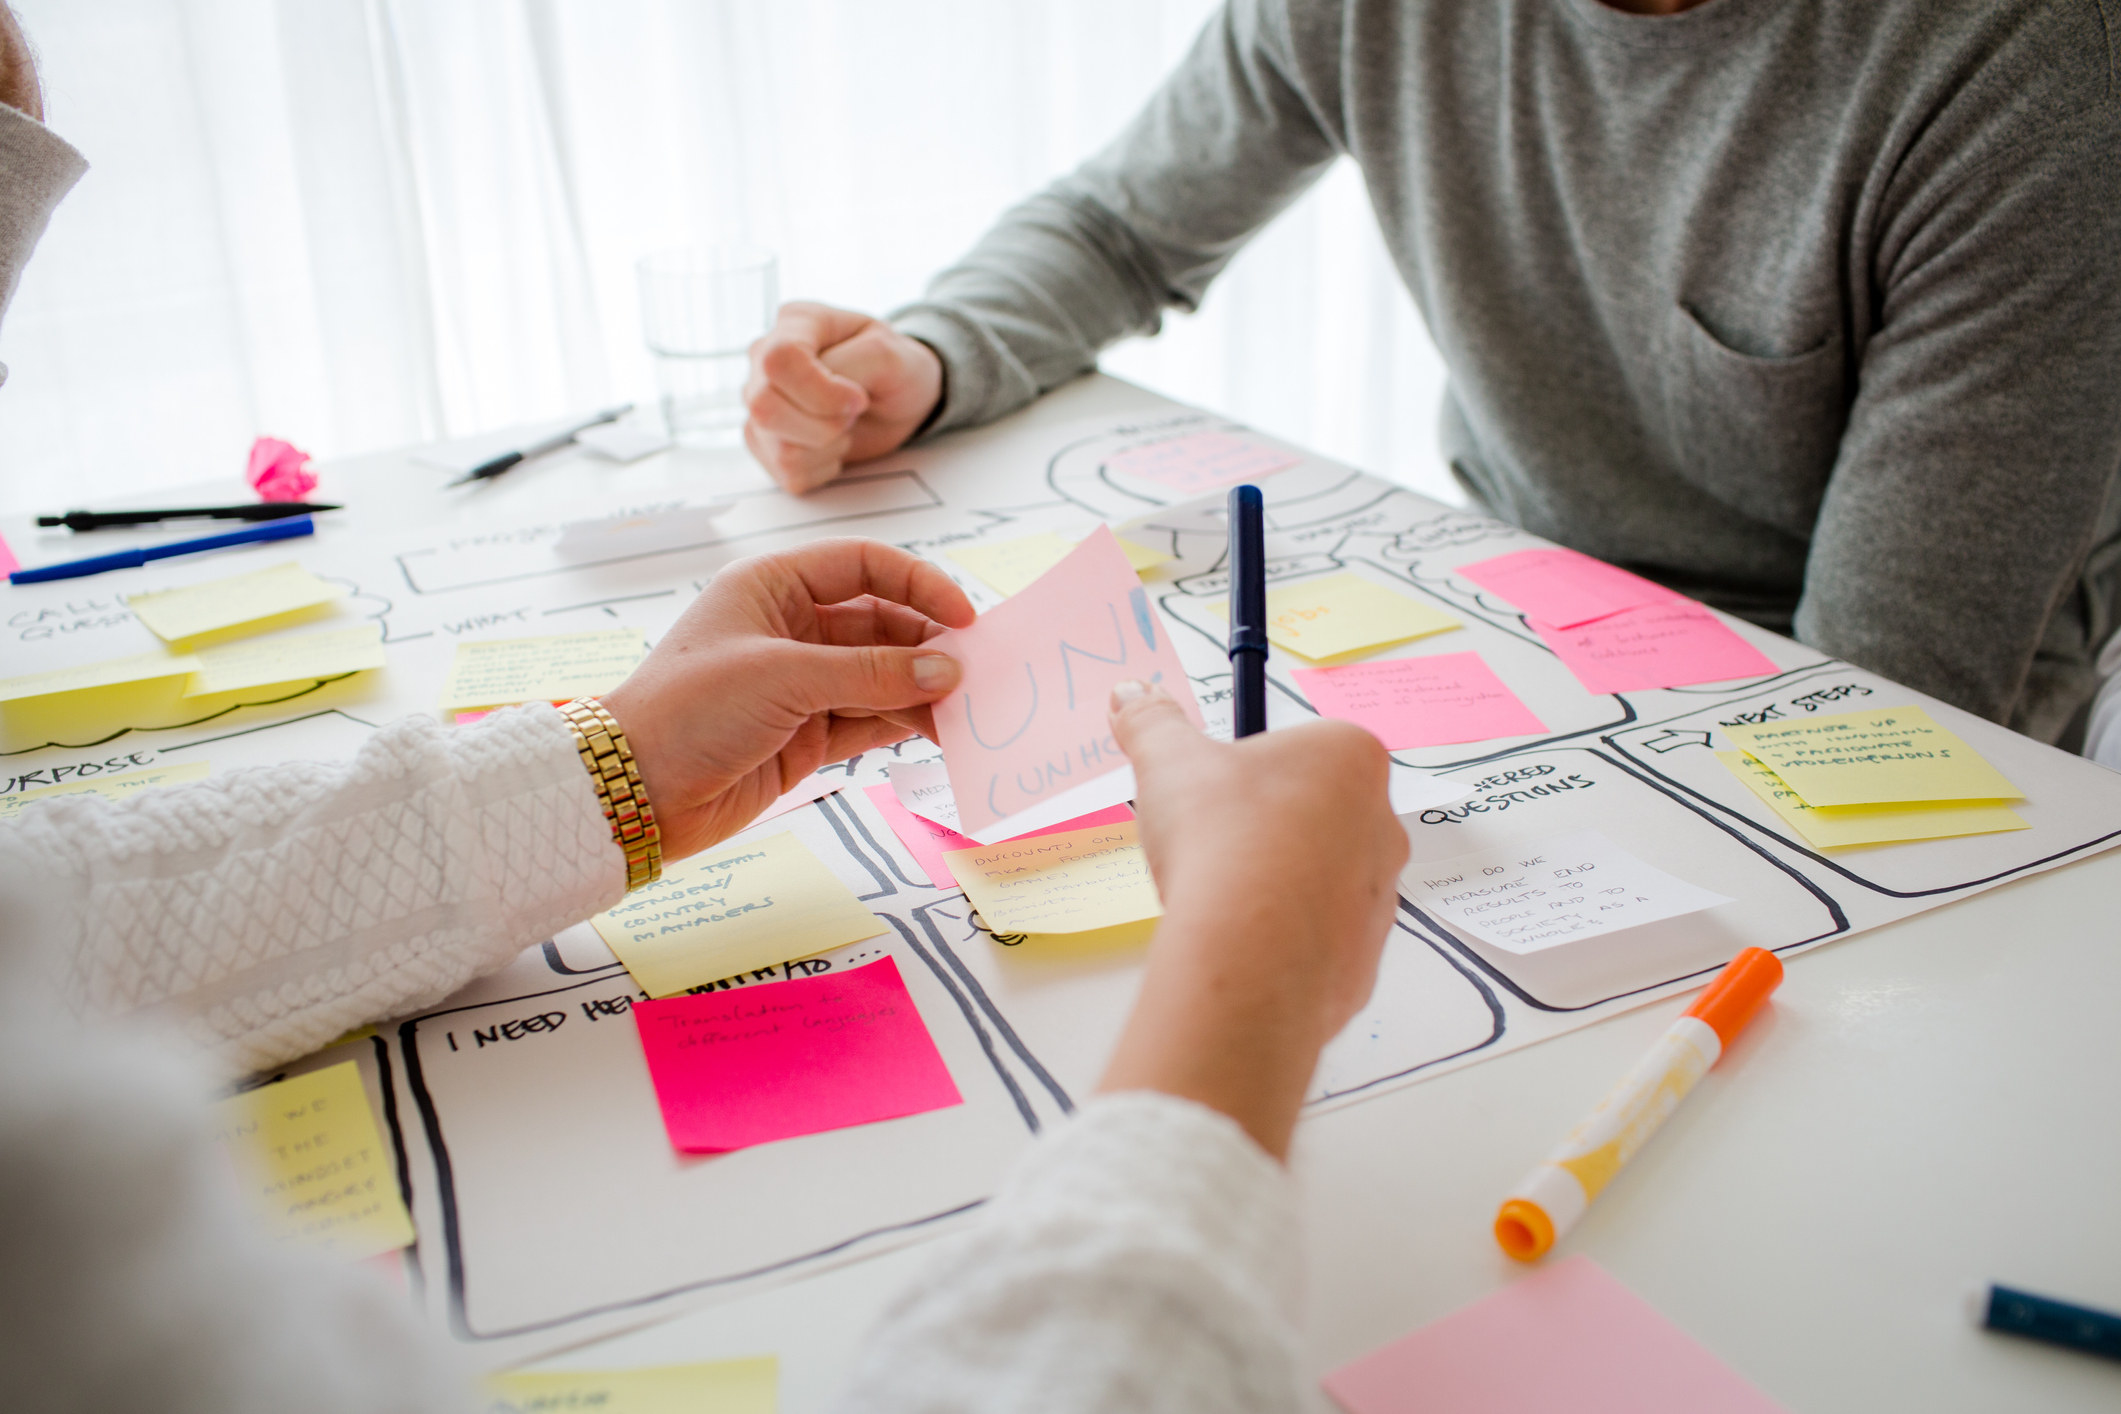 People working on a plan with post-its